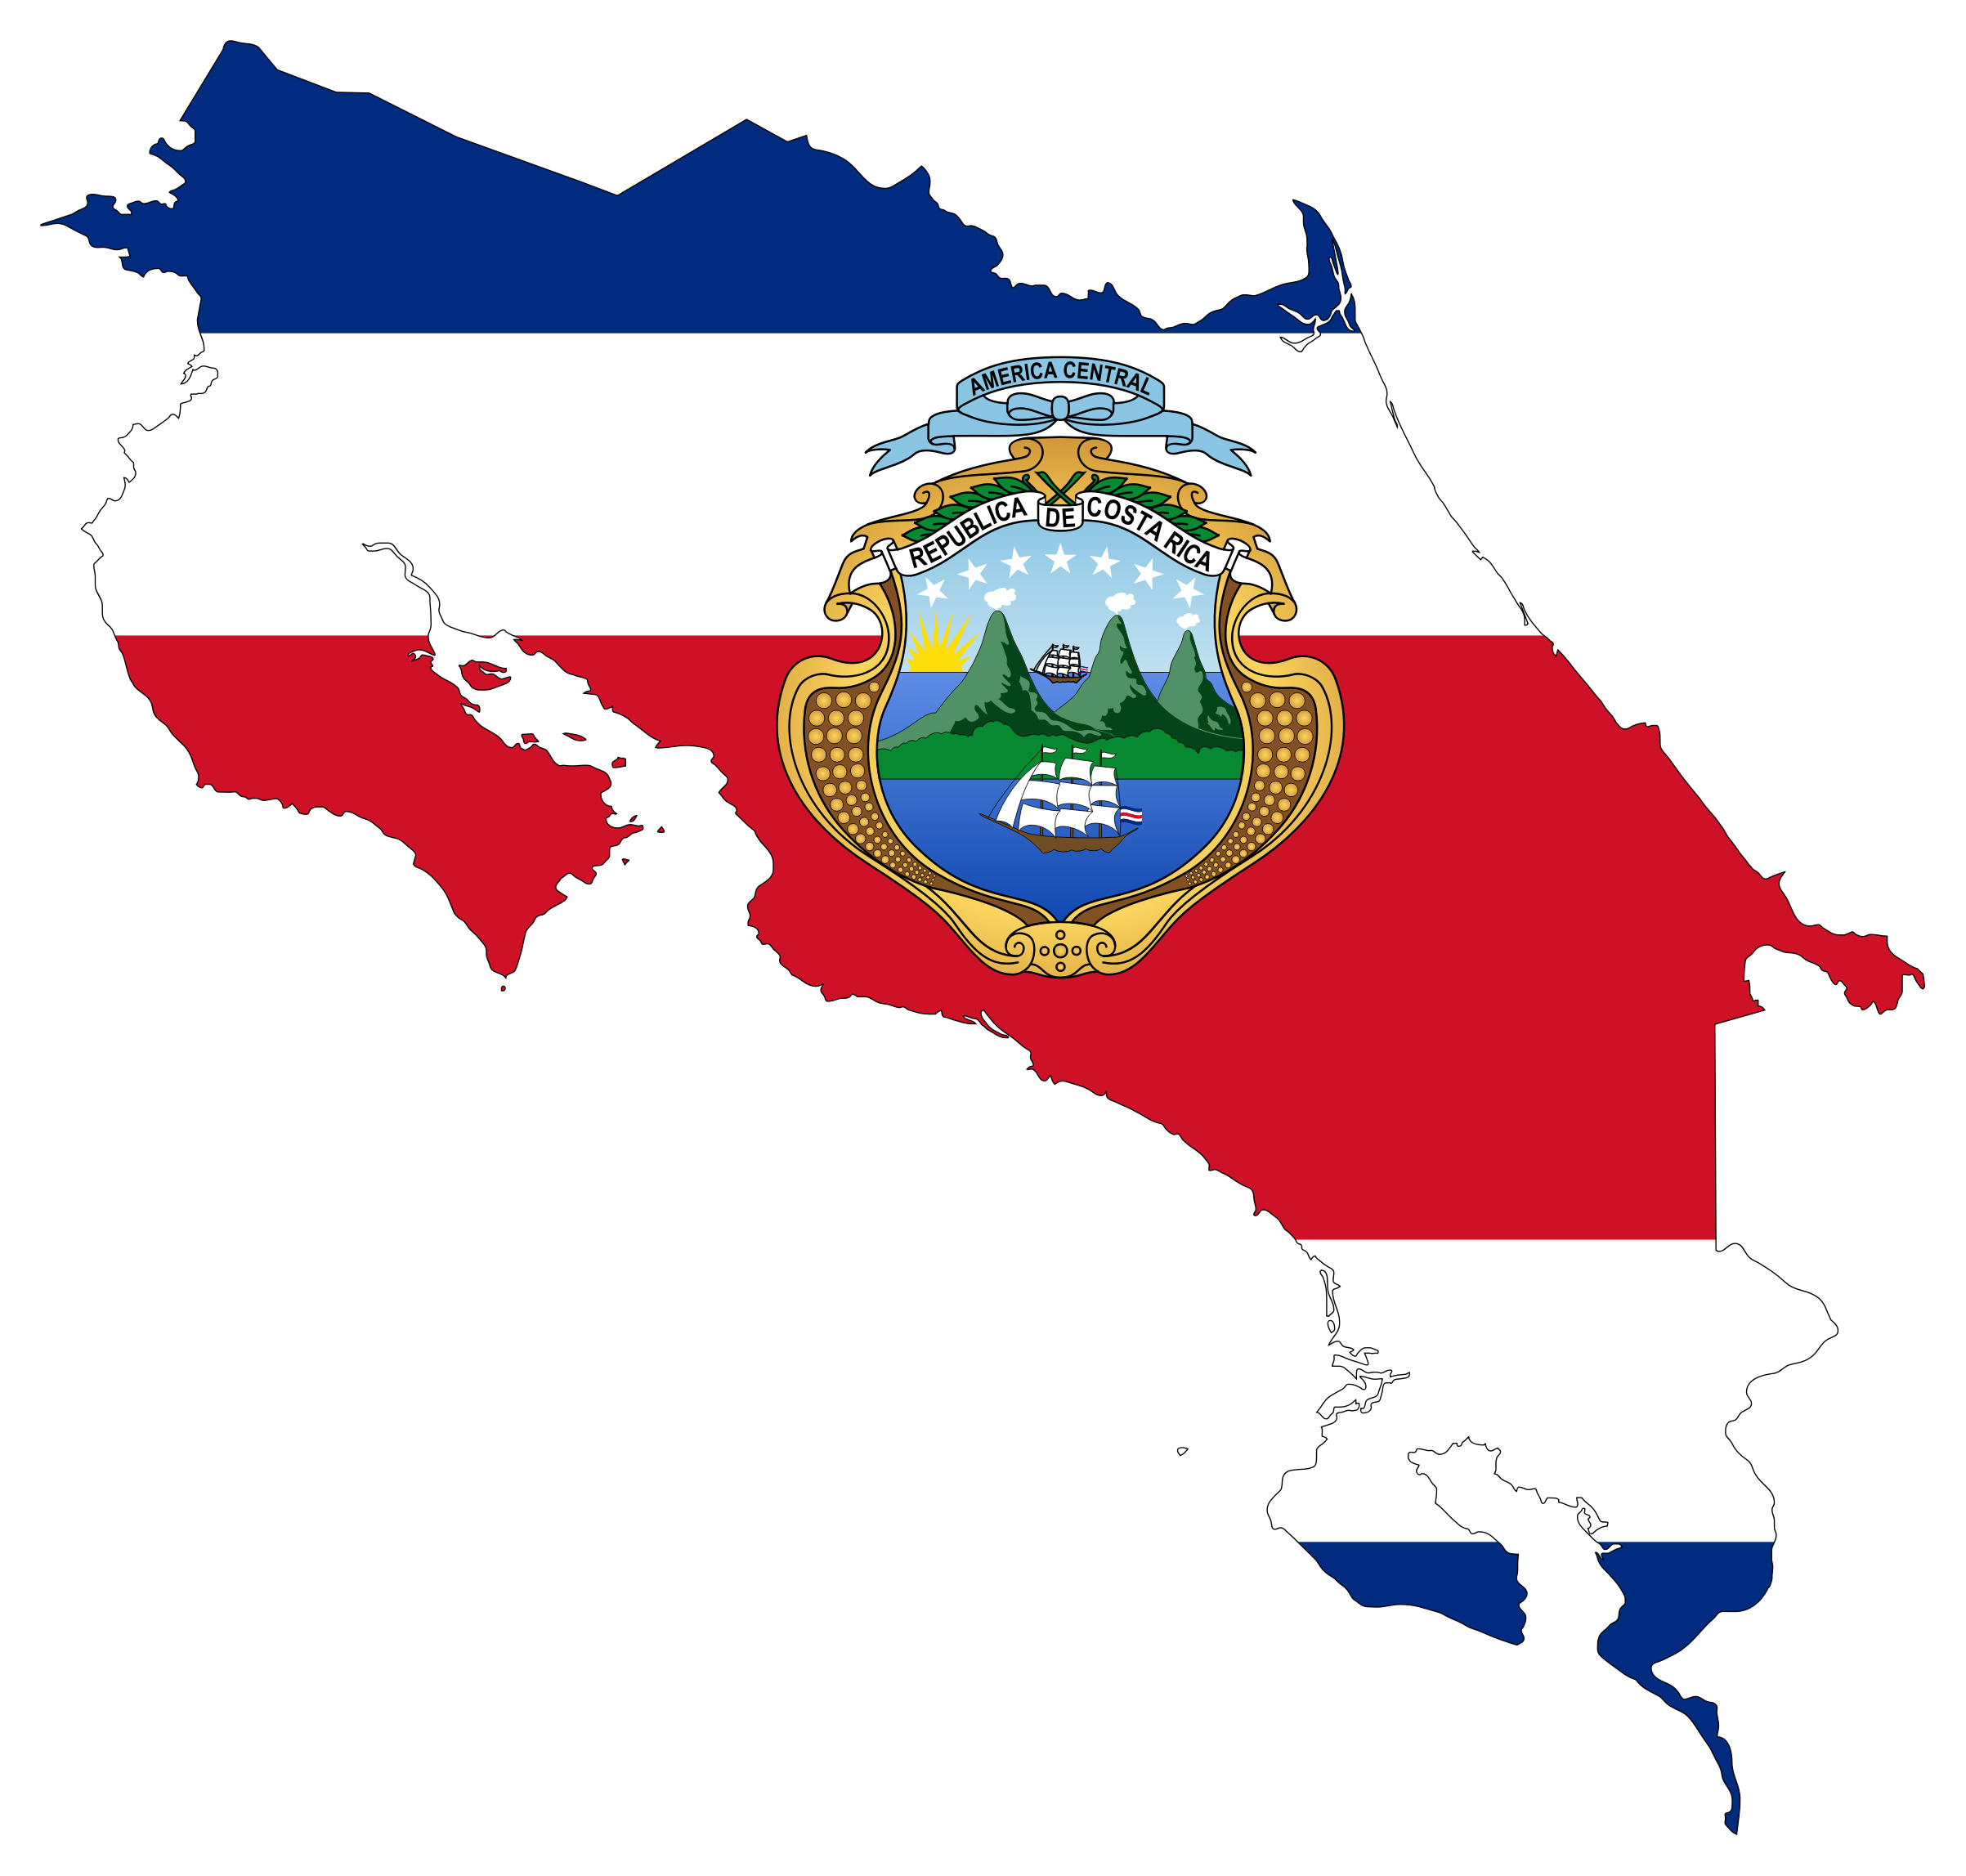 Large flag map of costa rica costa rica north america mapsland large flag map of costa rica gumiabroncs Image collections